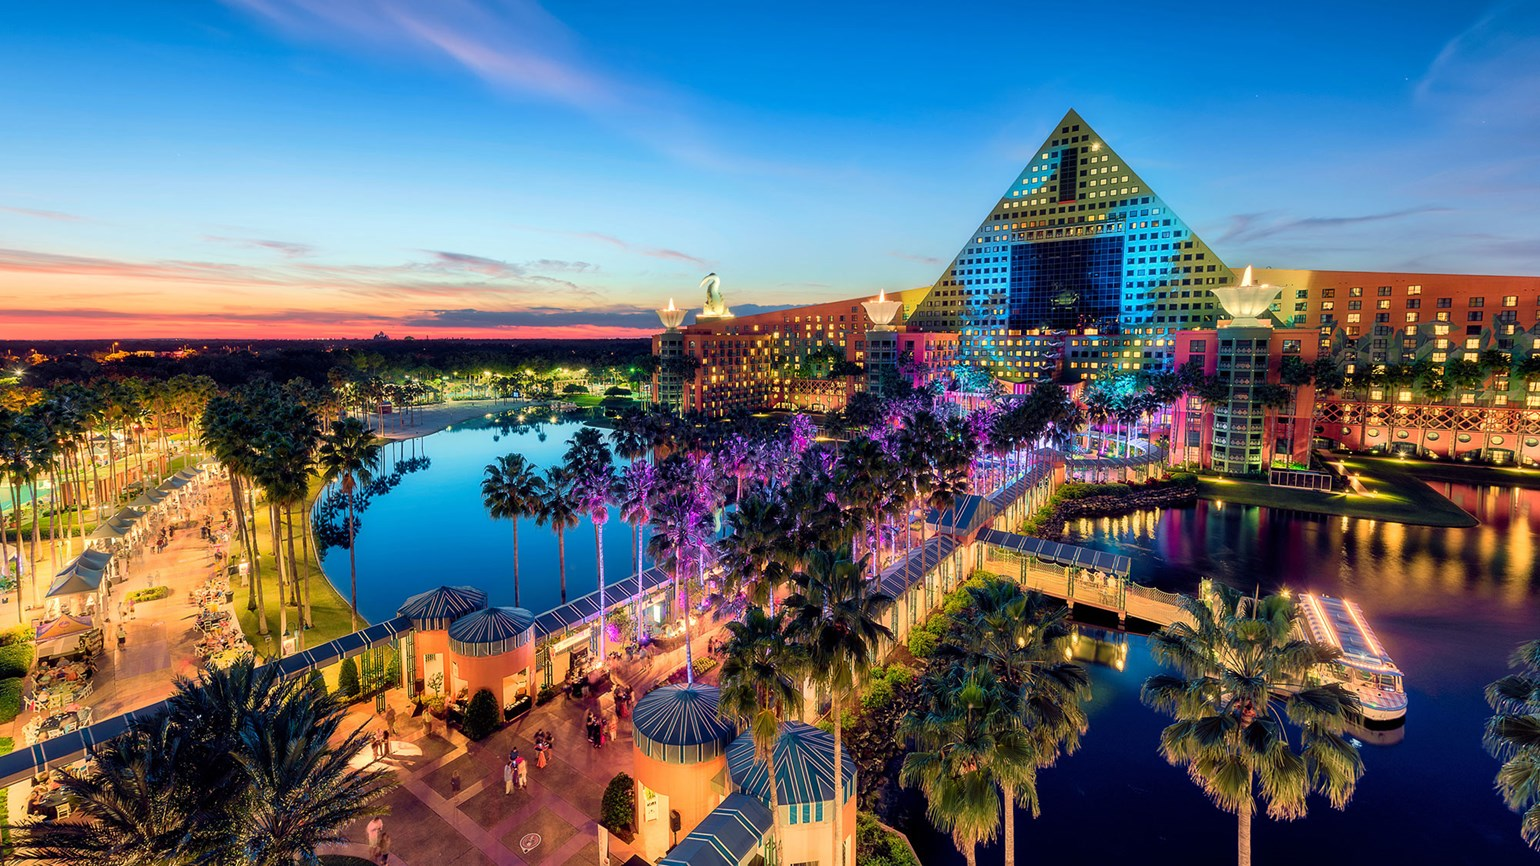 Disney World's Swan and Dolphin remain iconic in architecture, experience